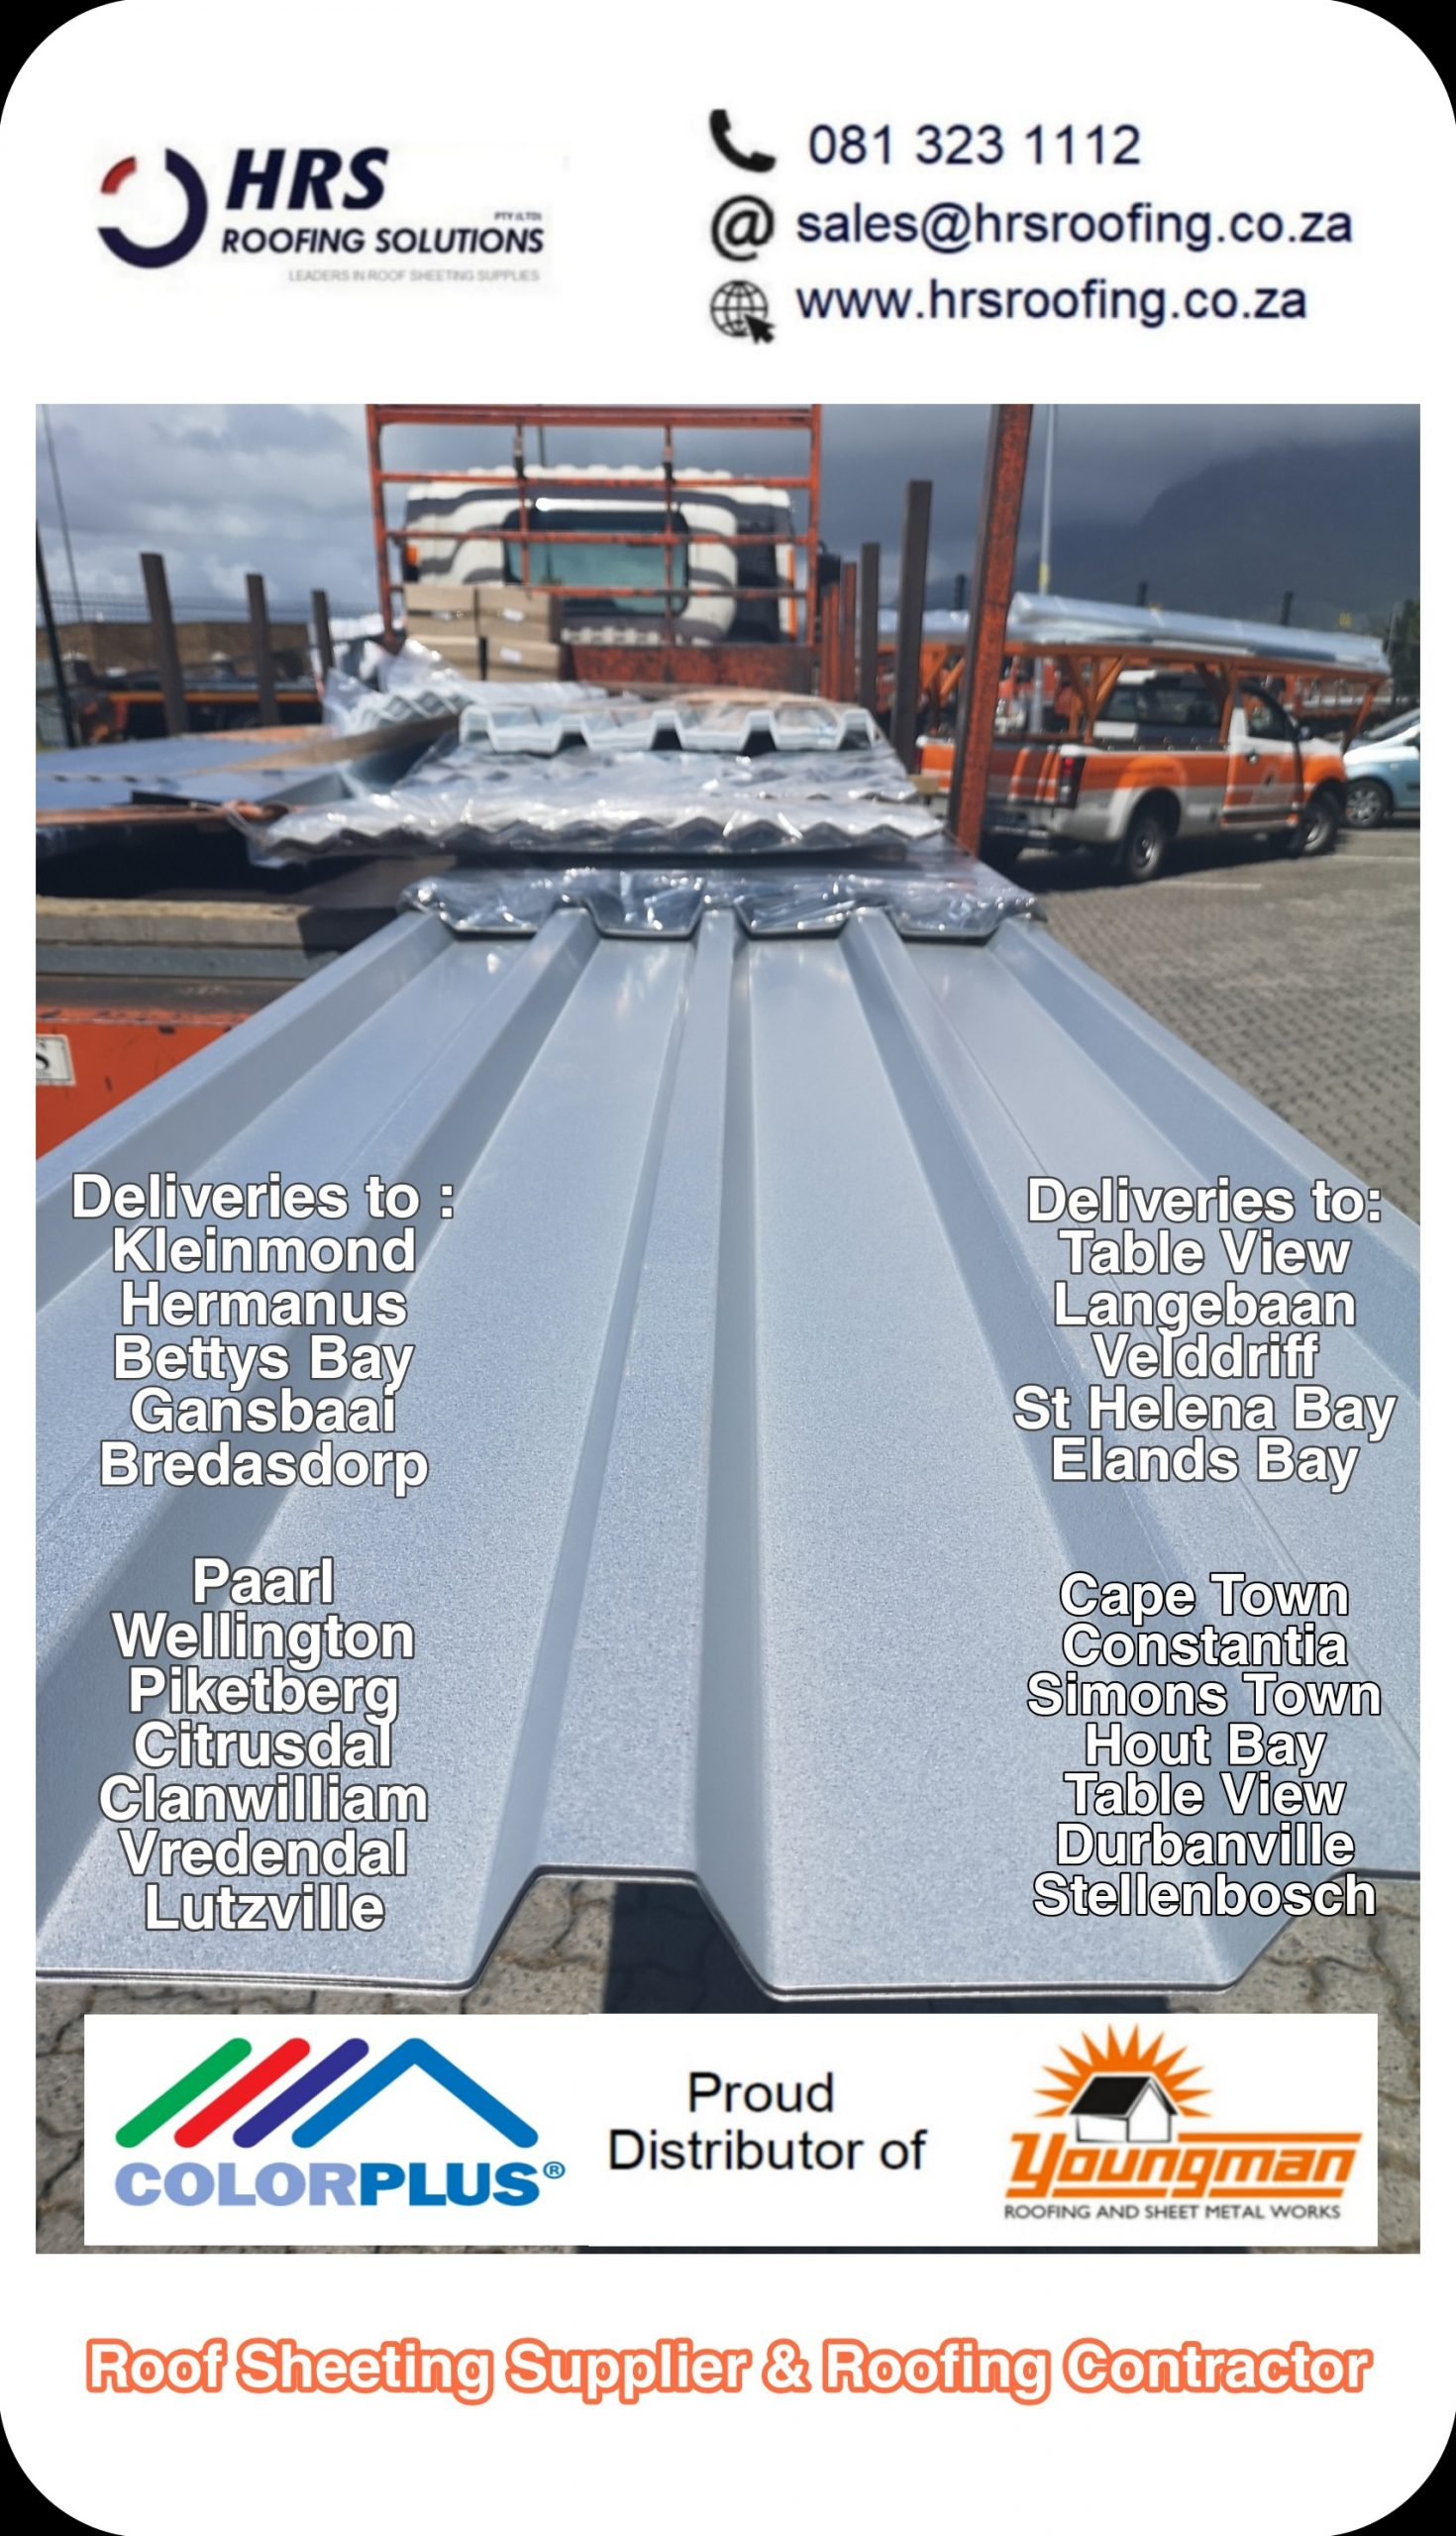 ibr corrugated roof sheeting supplier vredendal colorplus Velddriff hrs roofing scaled - Roofing Gallery